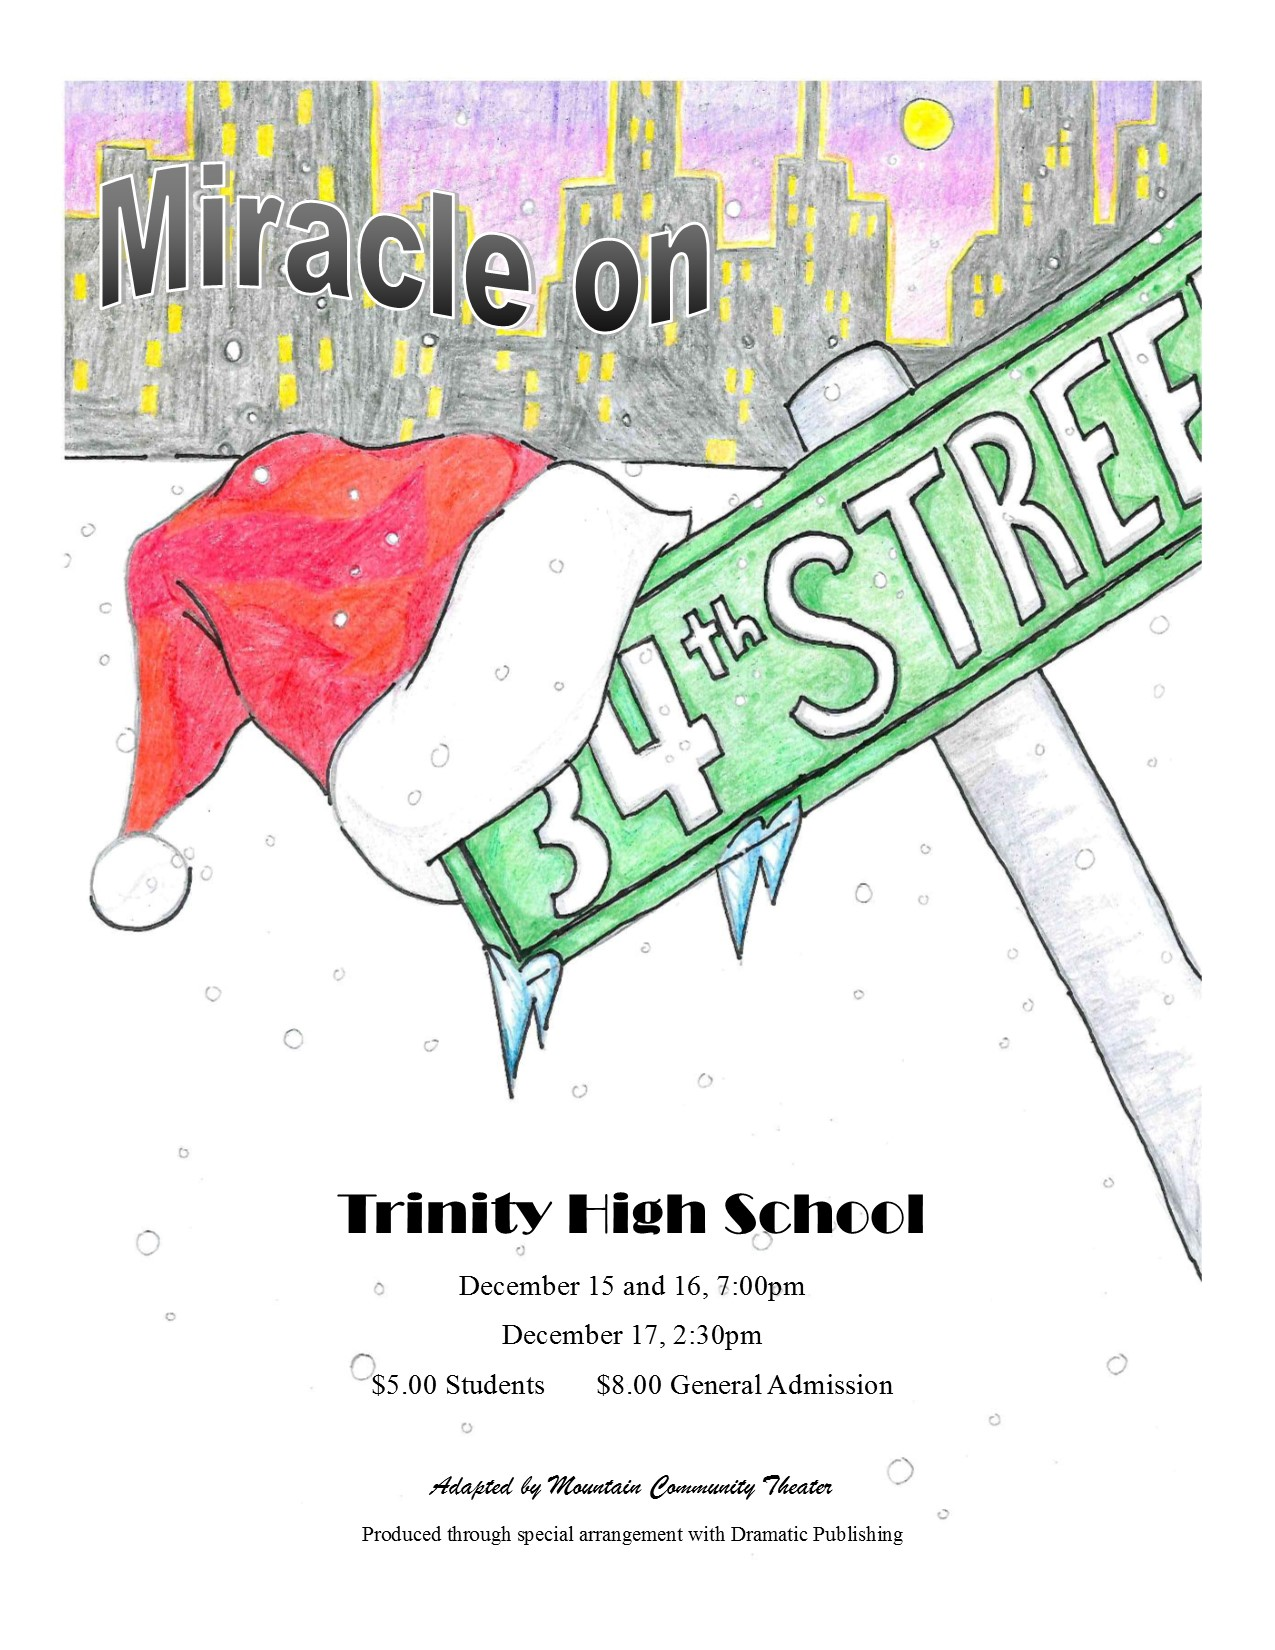 Miracle on 34th Street Flyer